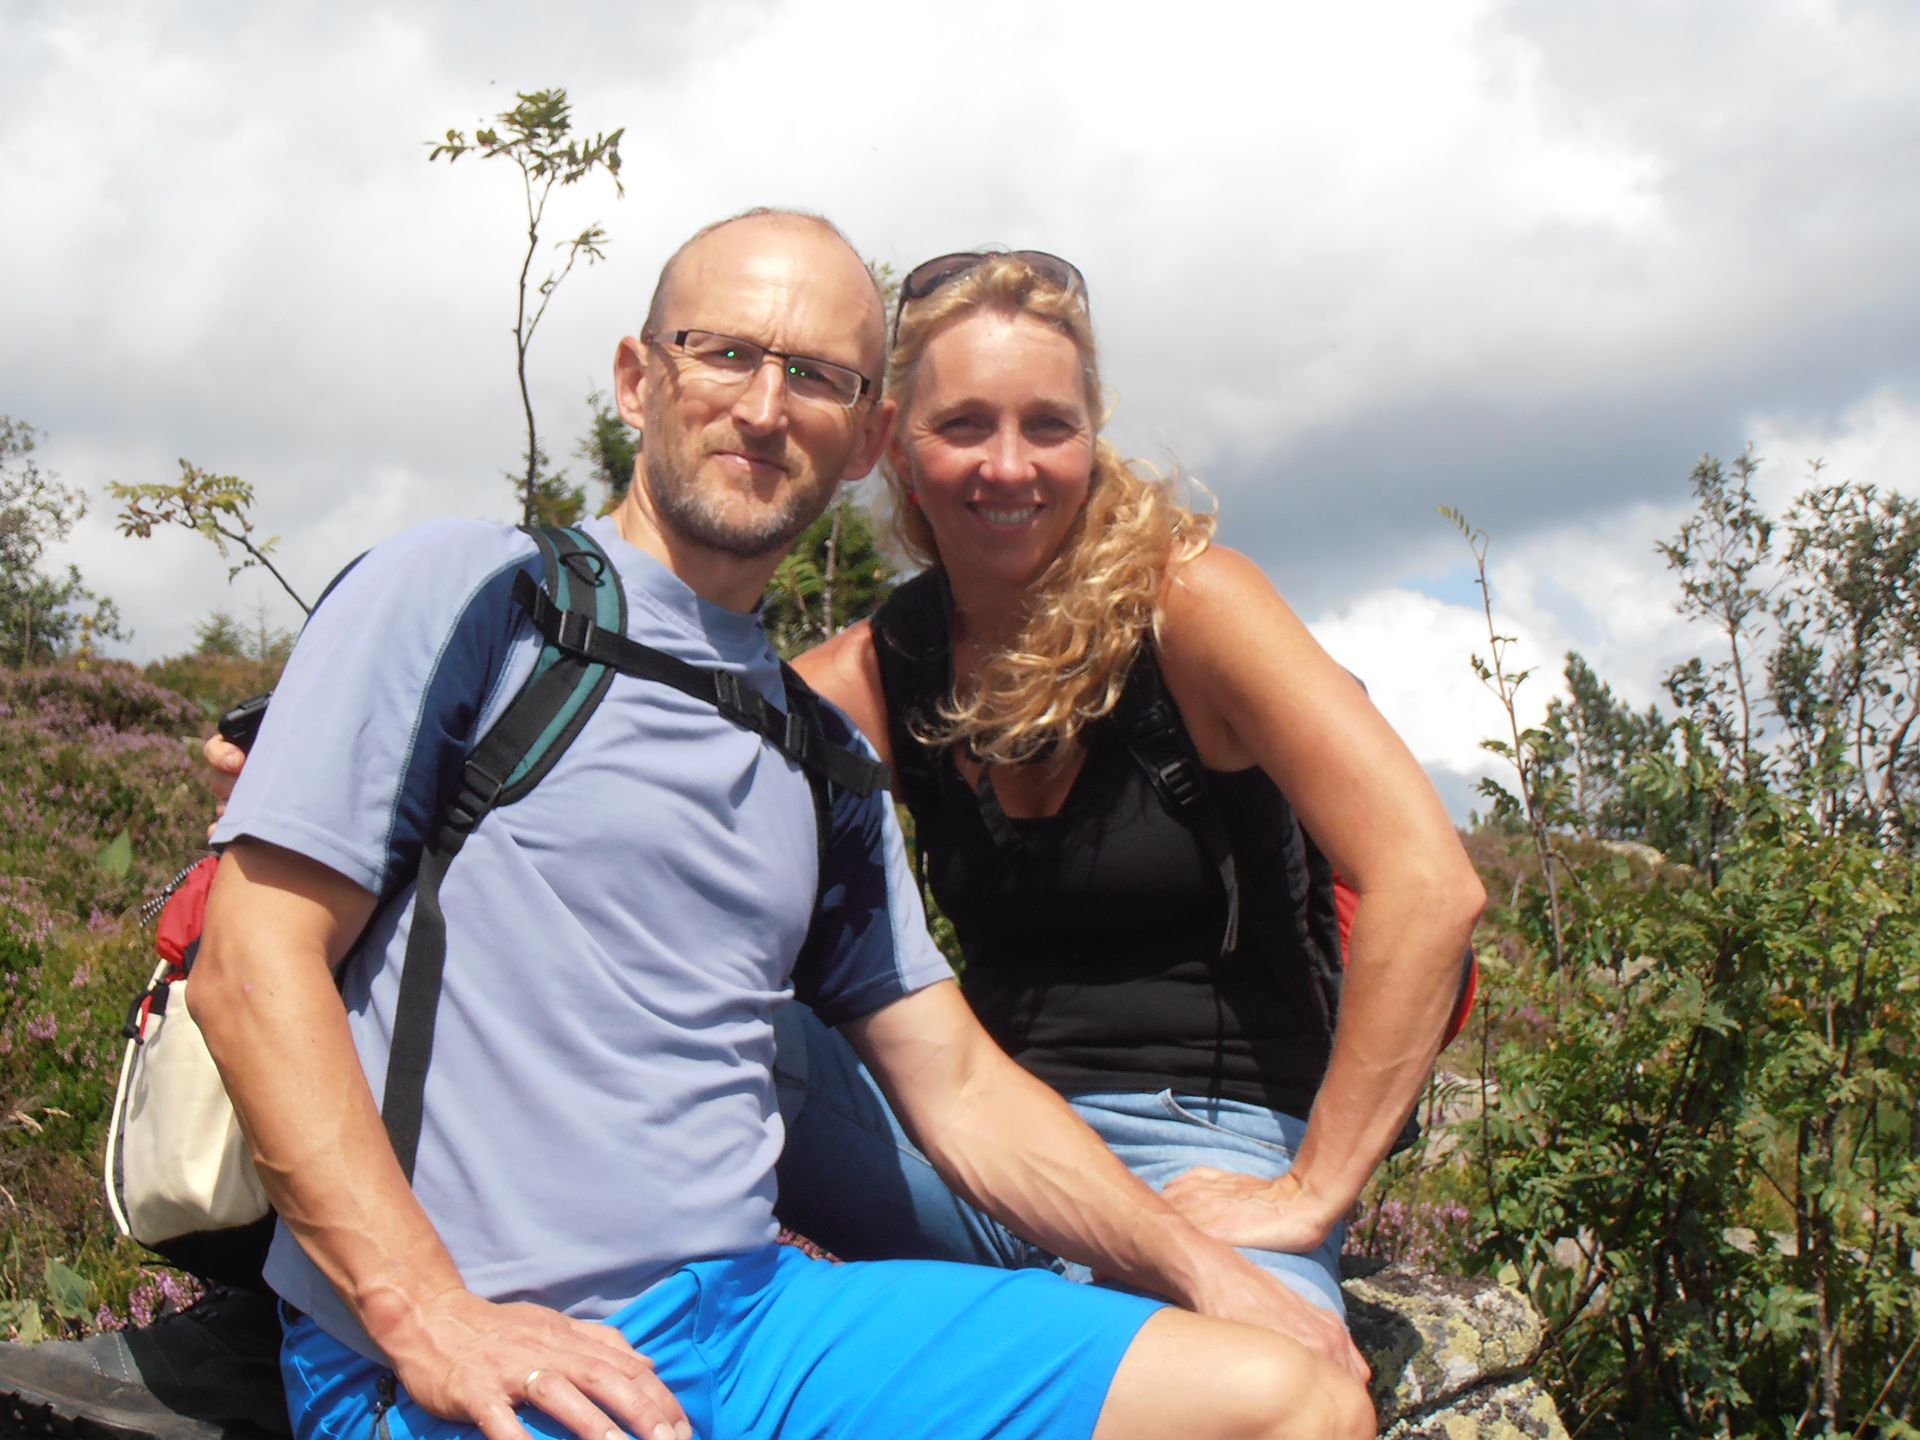 Patricia und Manfred - Bad Peterstal-Griesbach